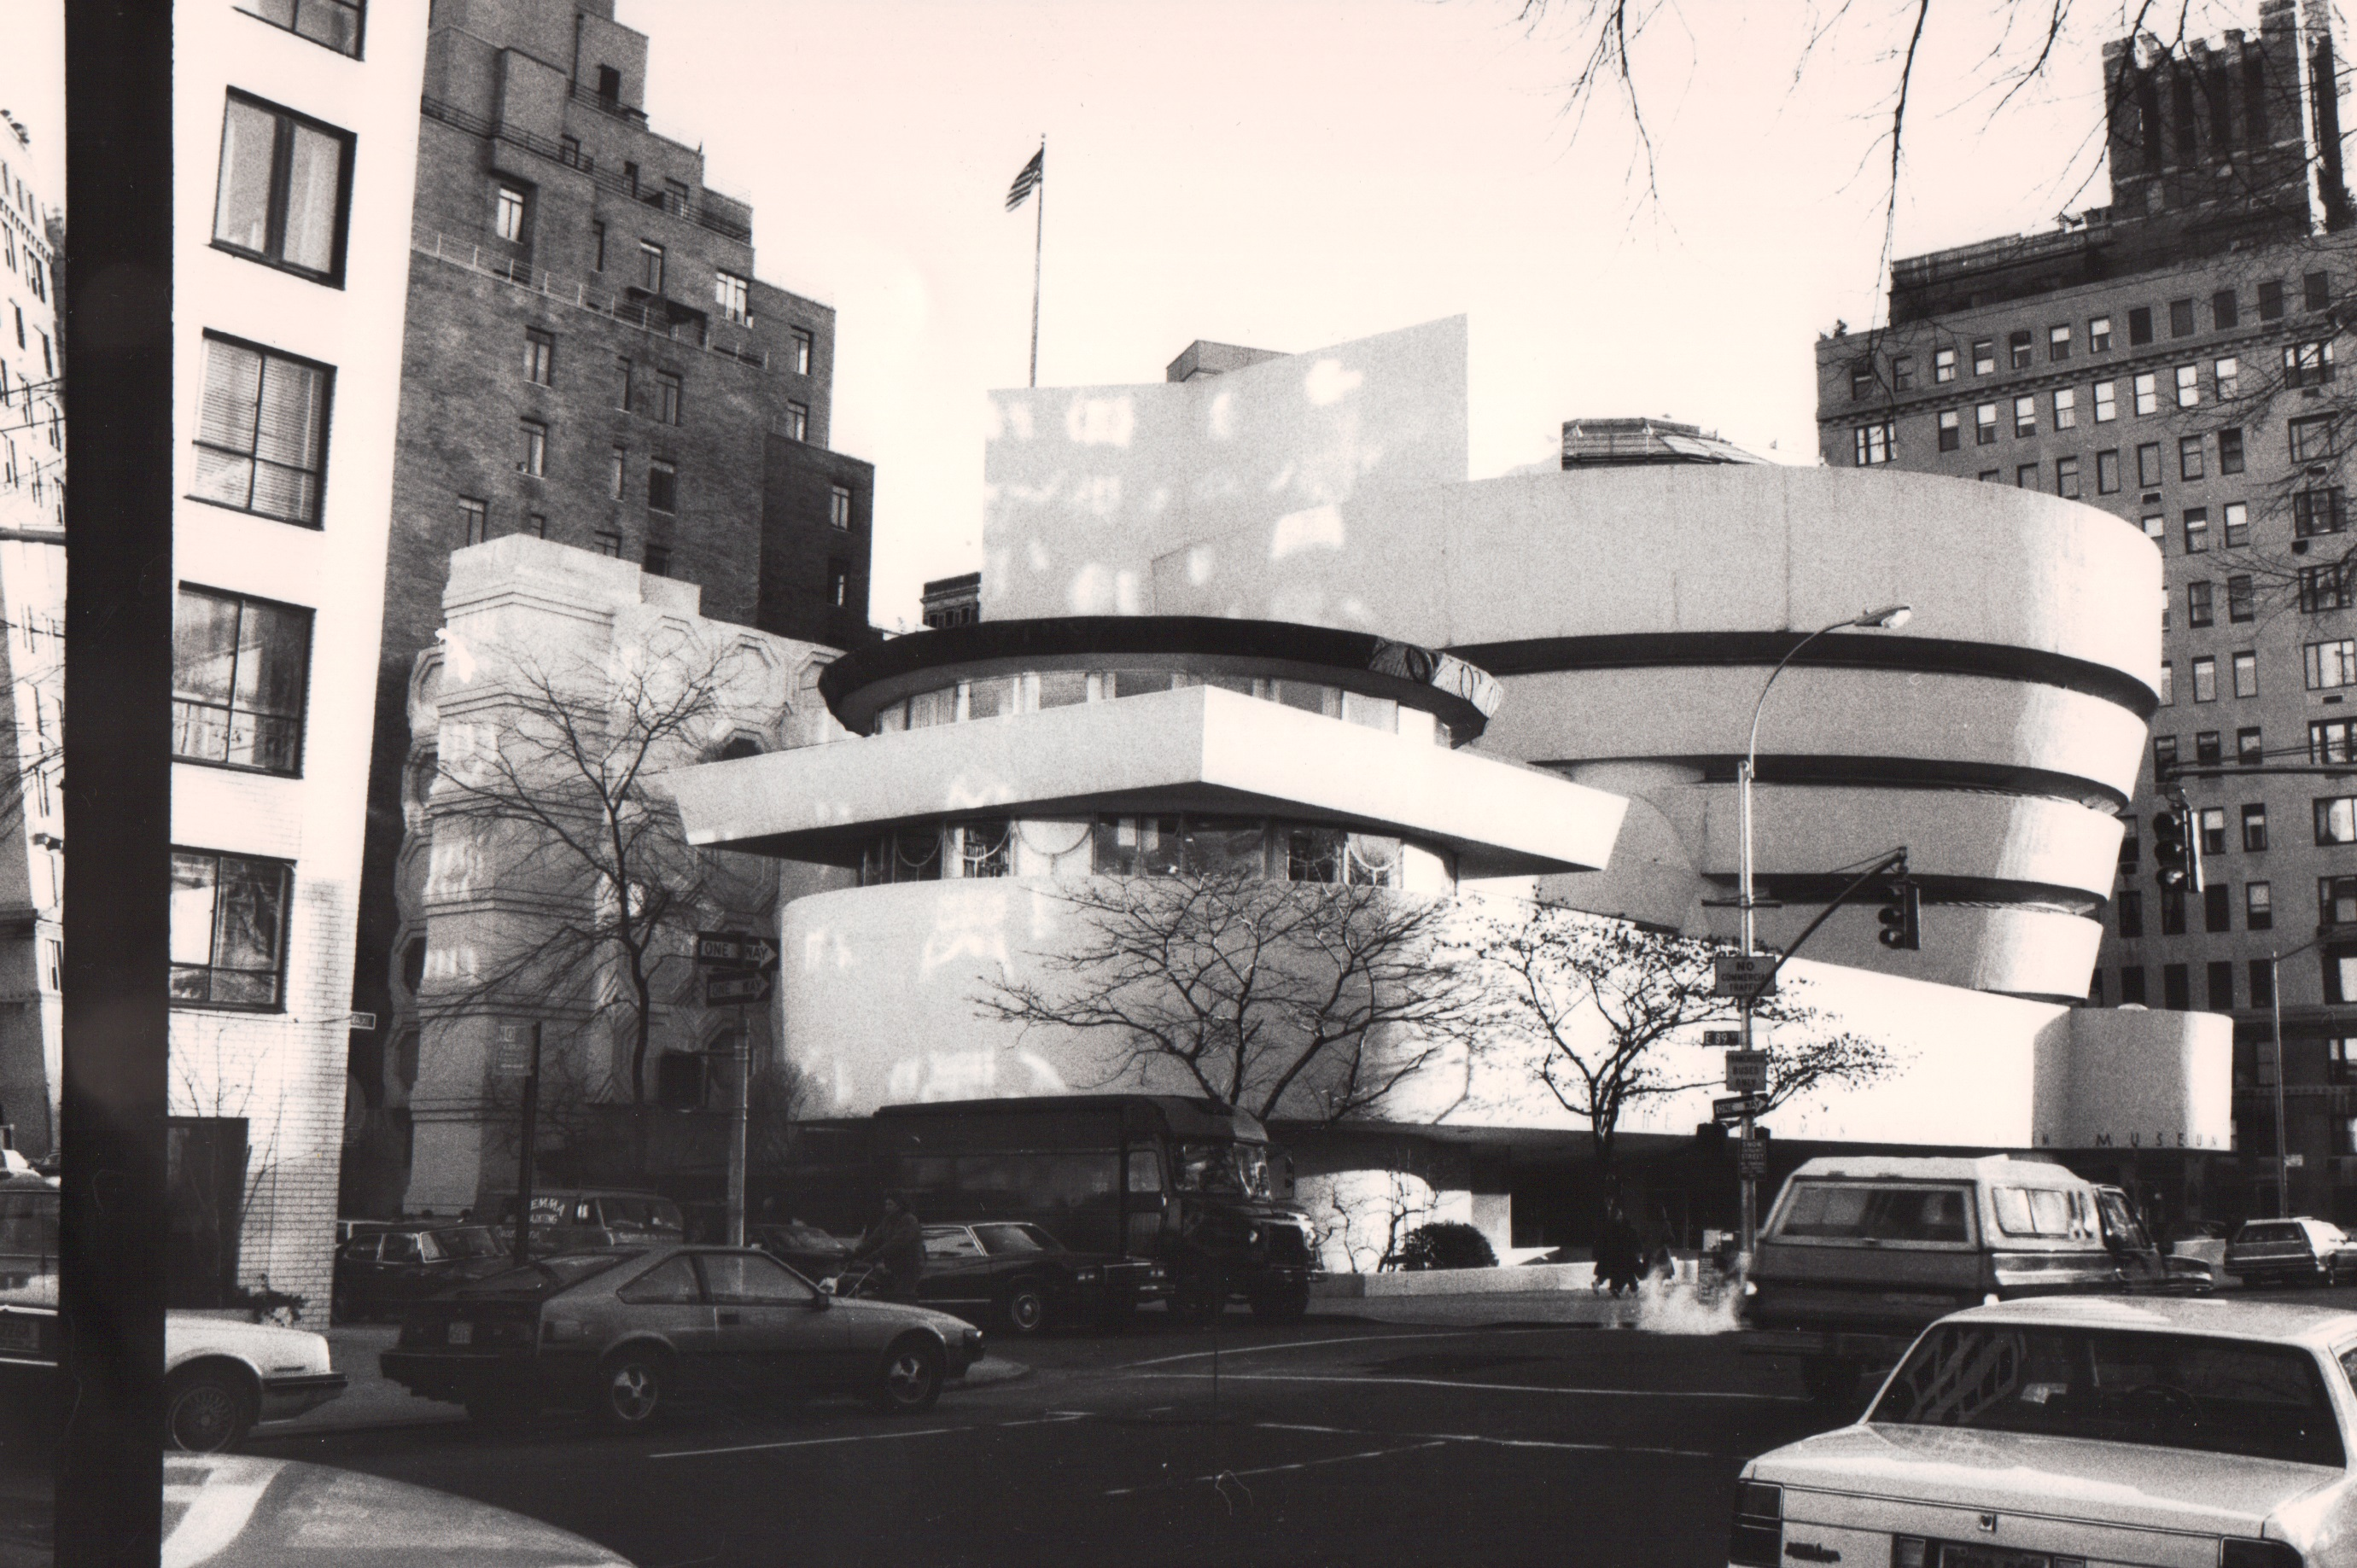 The Real Guggenheim Museum, Fifth Ave, NYC 1980s